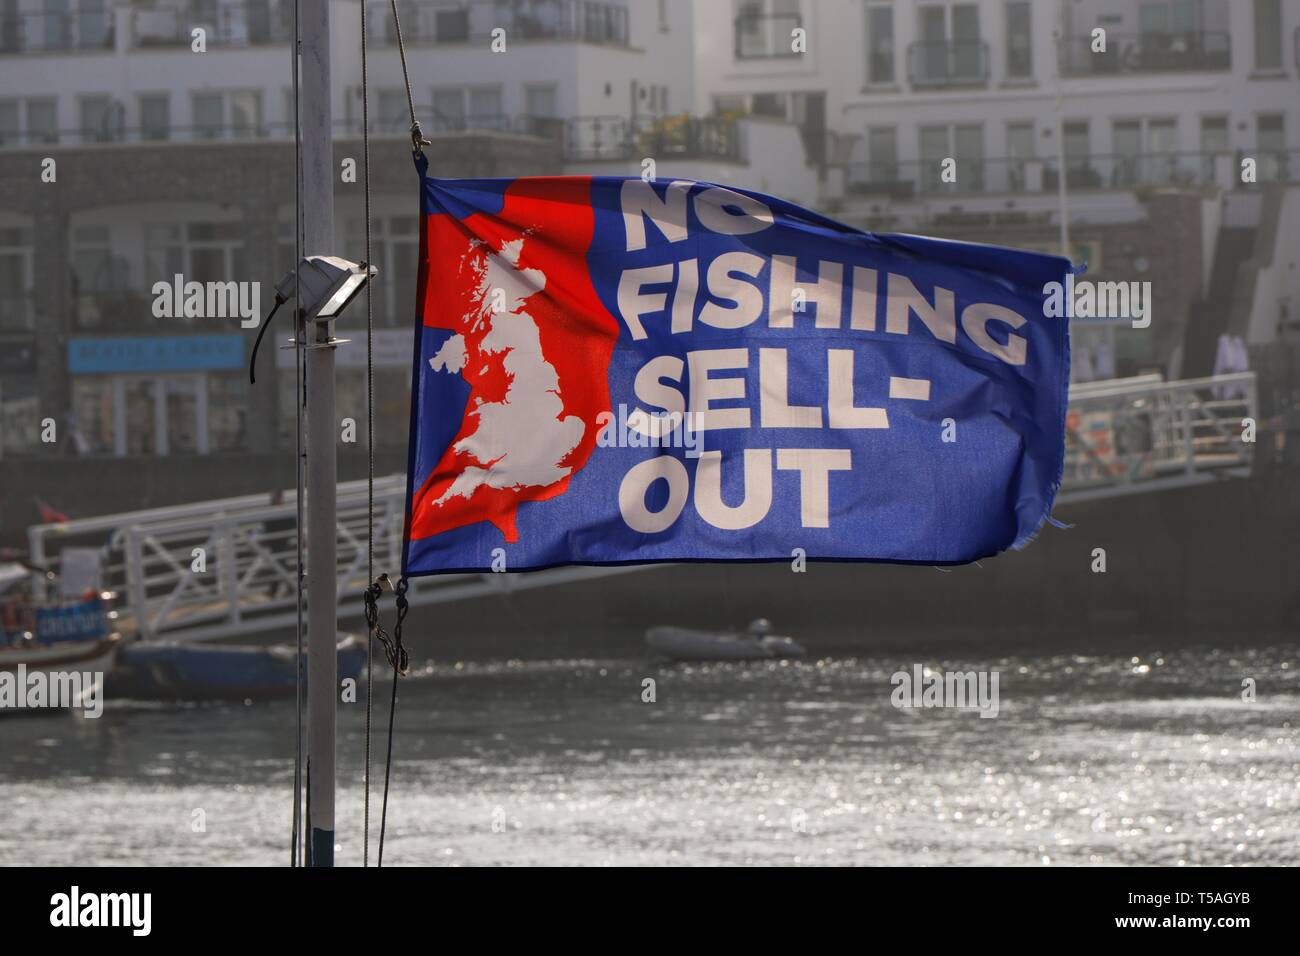 The pro Brexit message: No Fishing Sell-Out, on a bright flag fluttering in the morning breeze, Brixham Harbour, Devon, UK - Stock Image